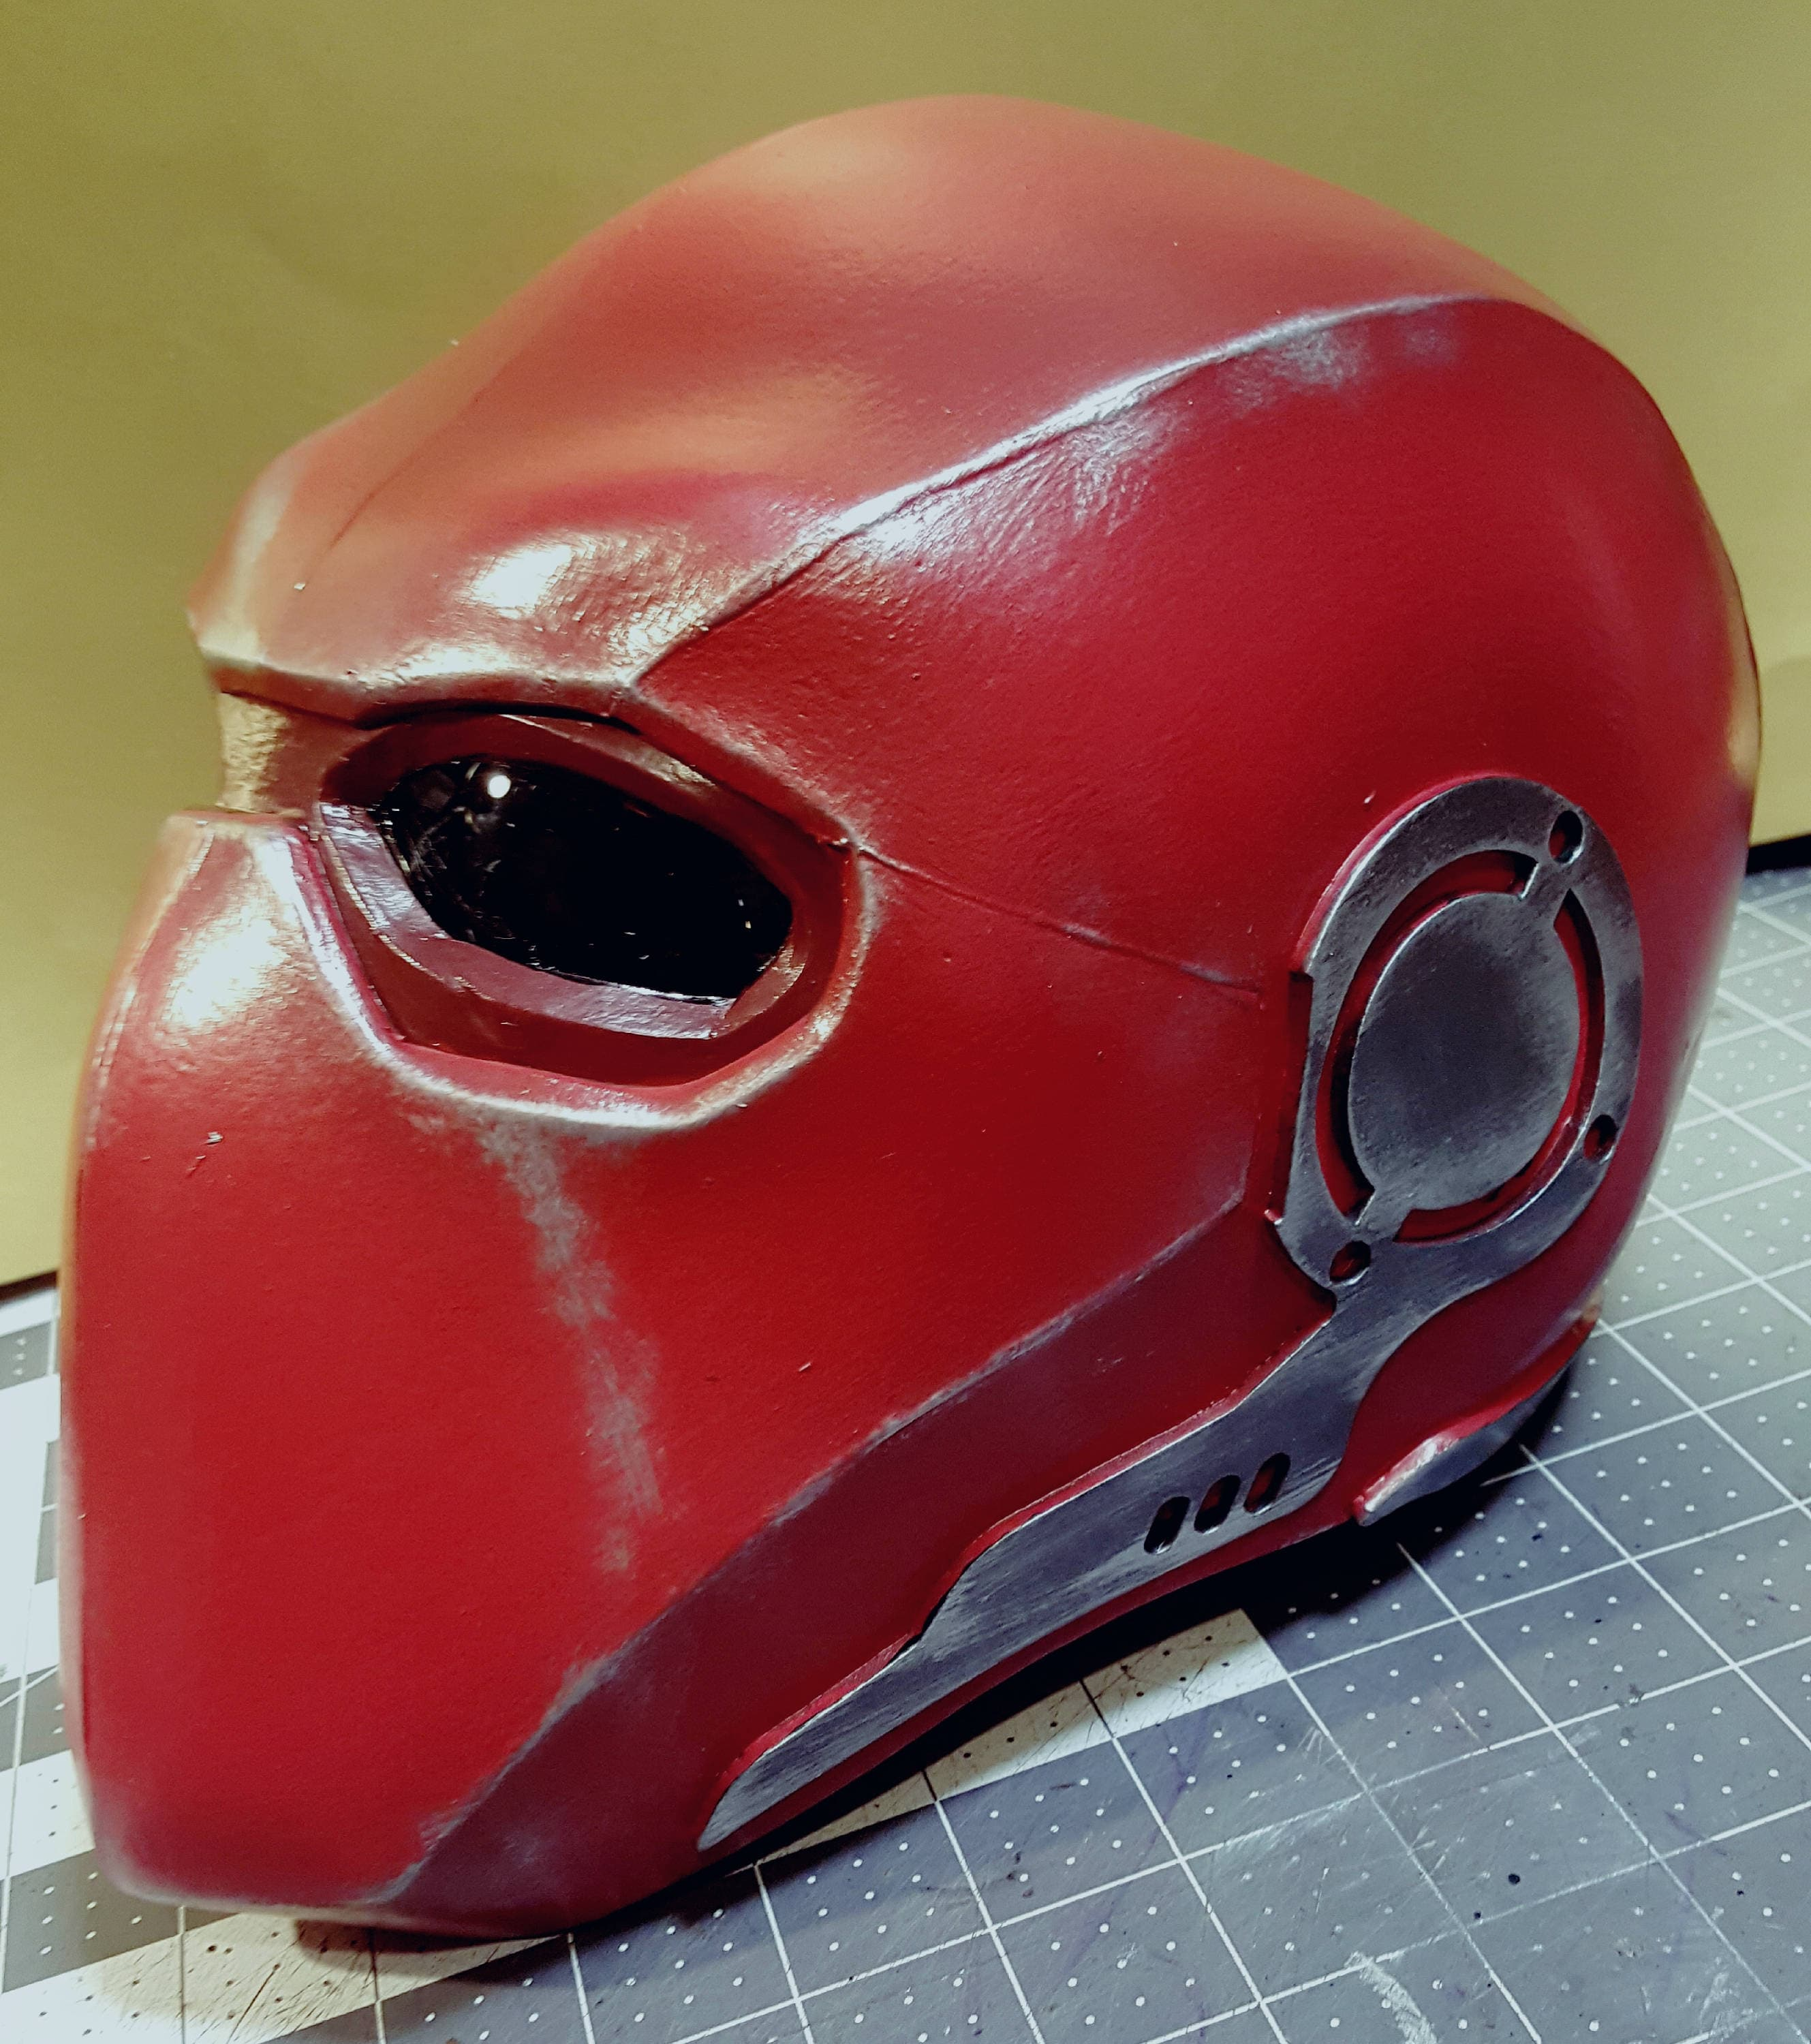 Redho0d Injusticetw0 Foam Helmet Templates Etsy